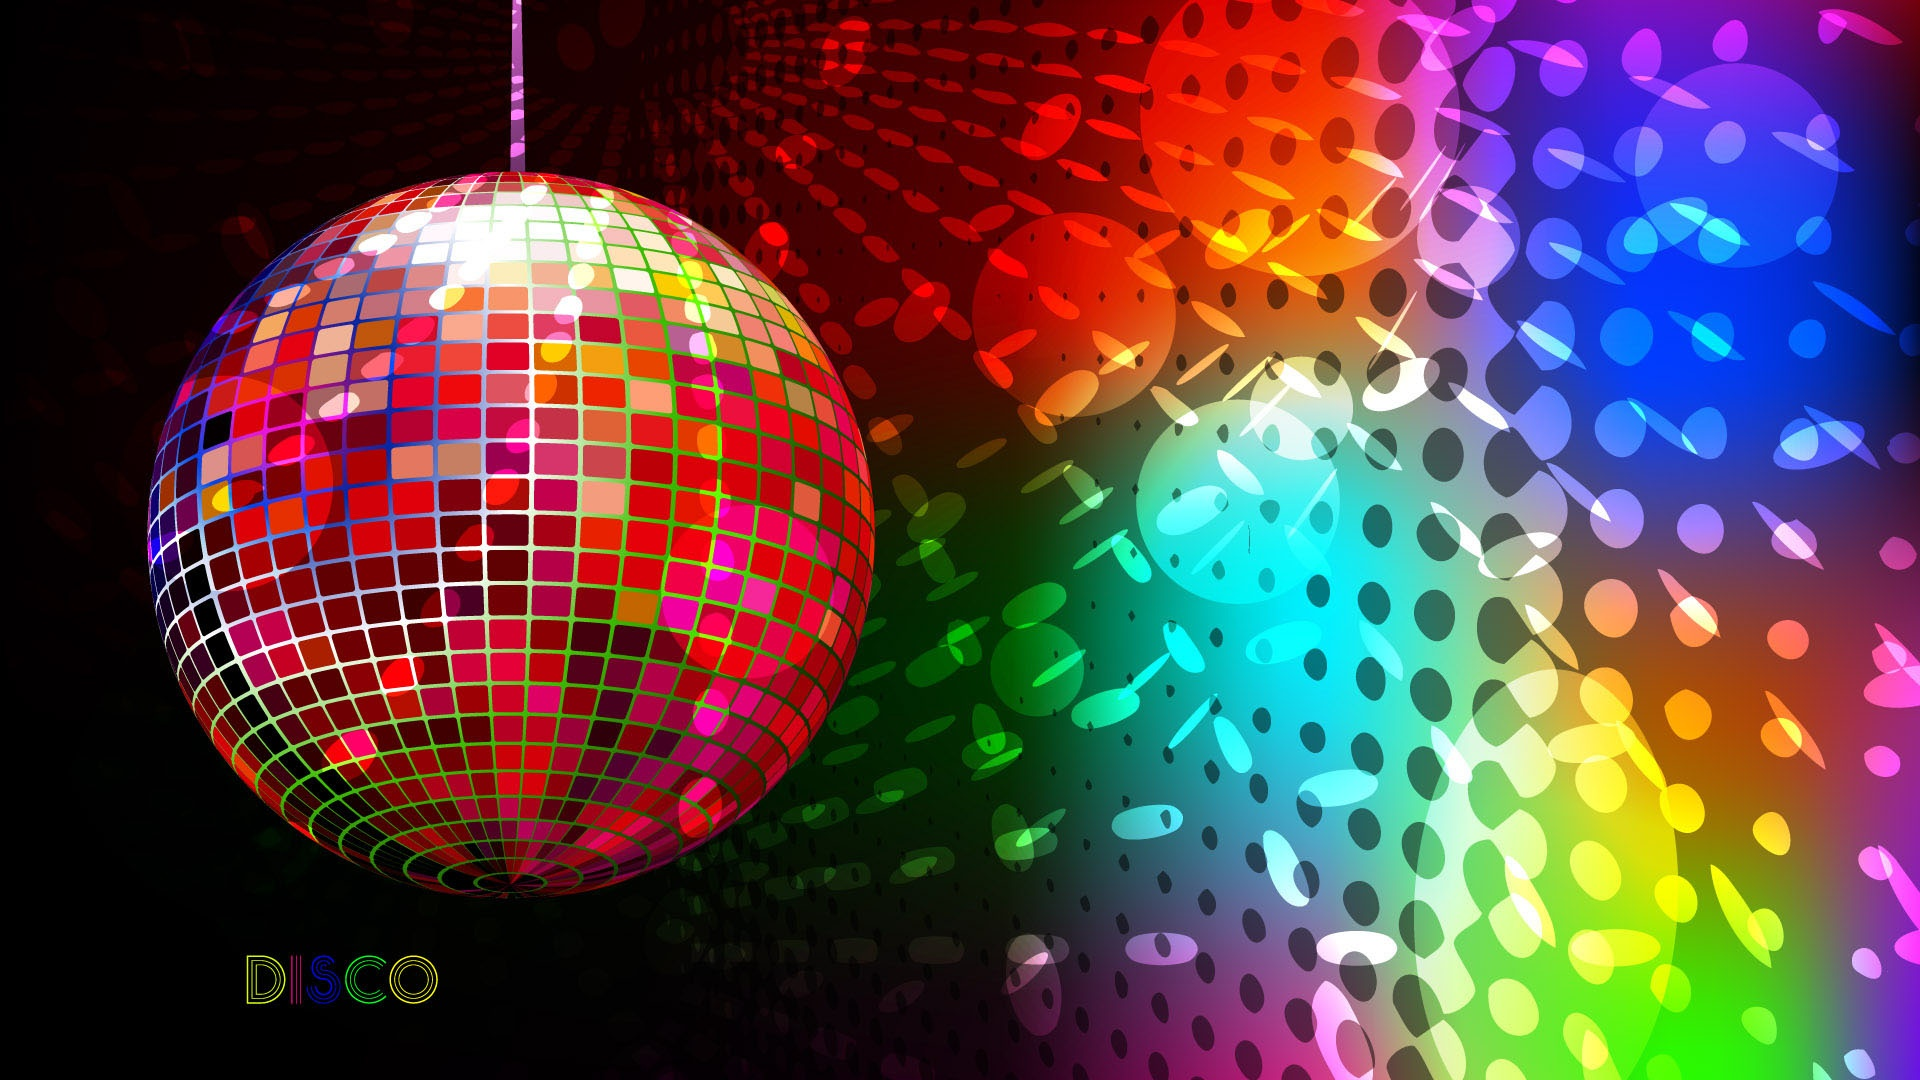 backgrounds wallpapers 16 party light effects backgrounds wallpapers 1920x1080